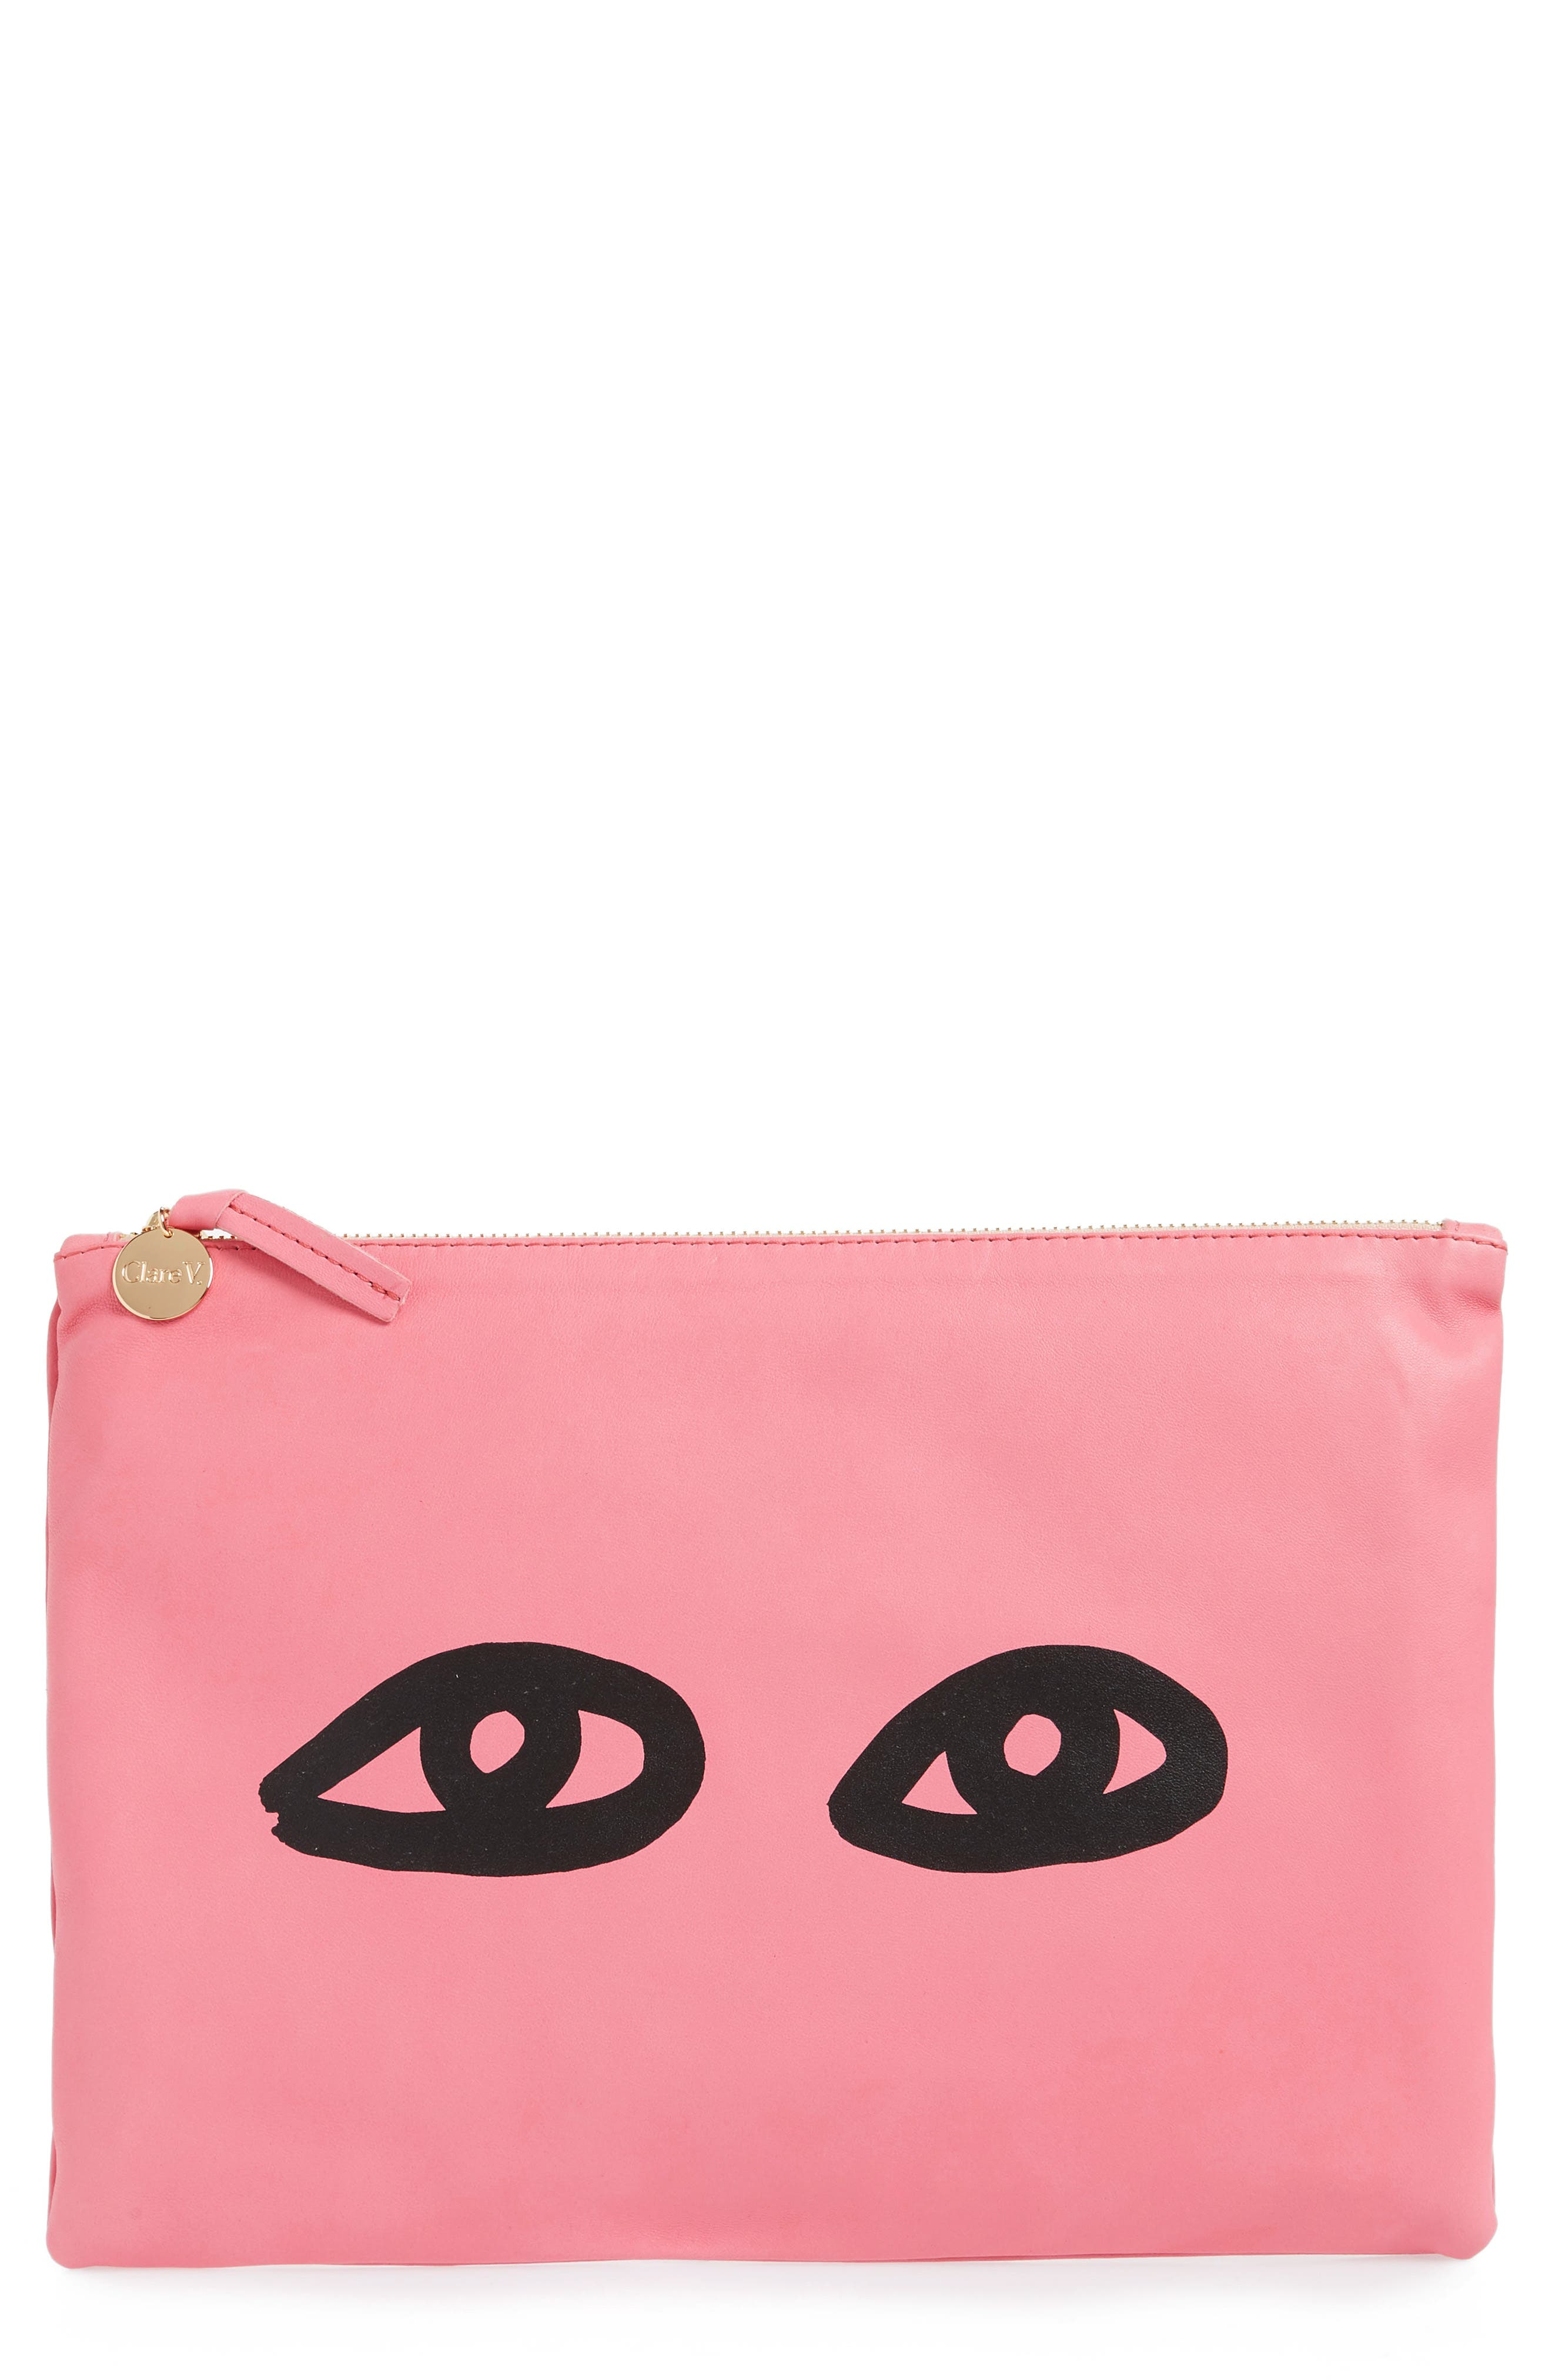 Eyes Leather Clutch,                         Main,                         color, 650